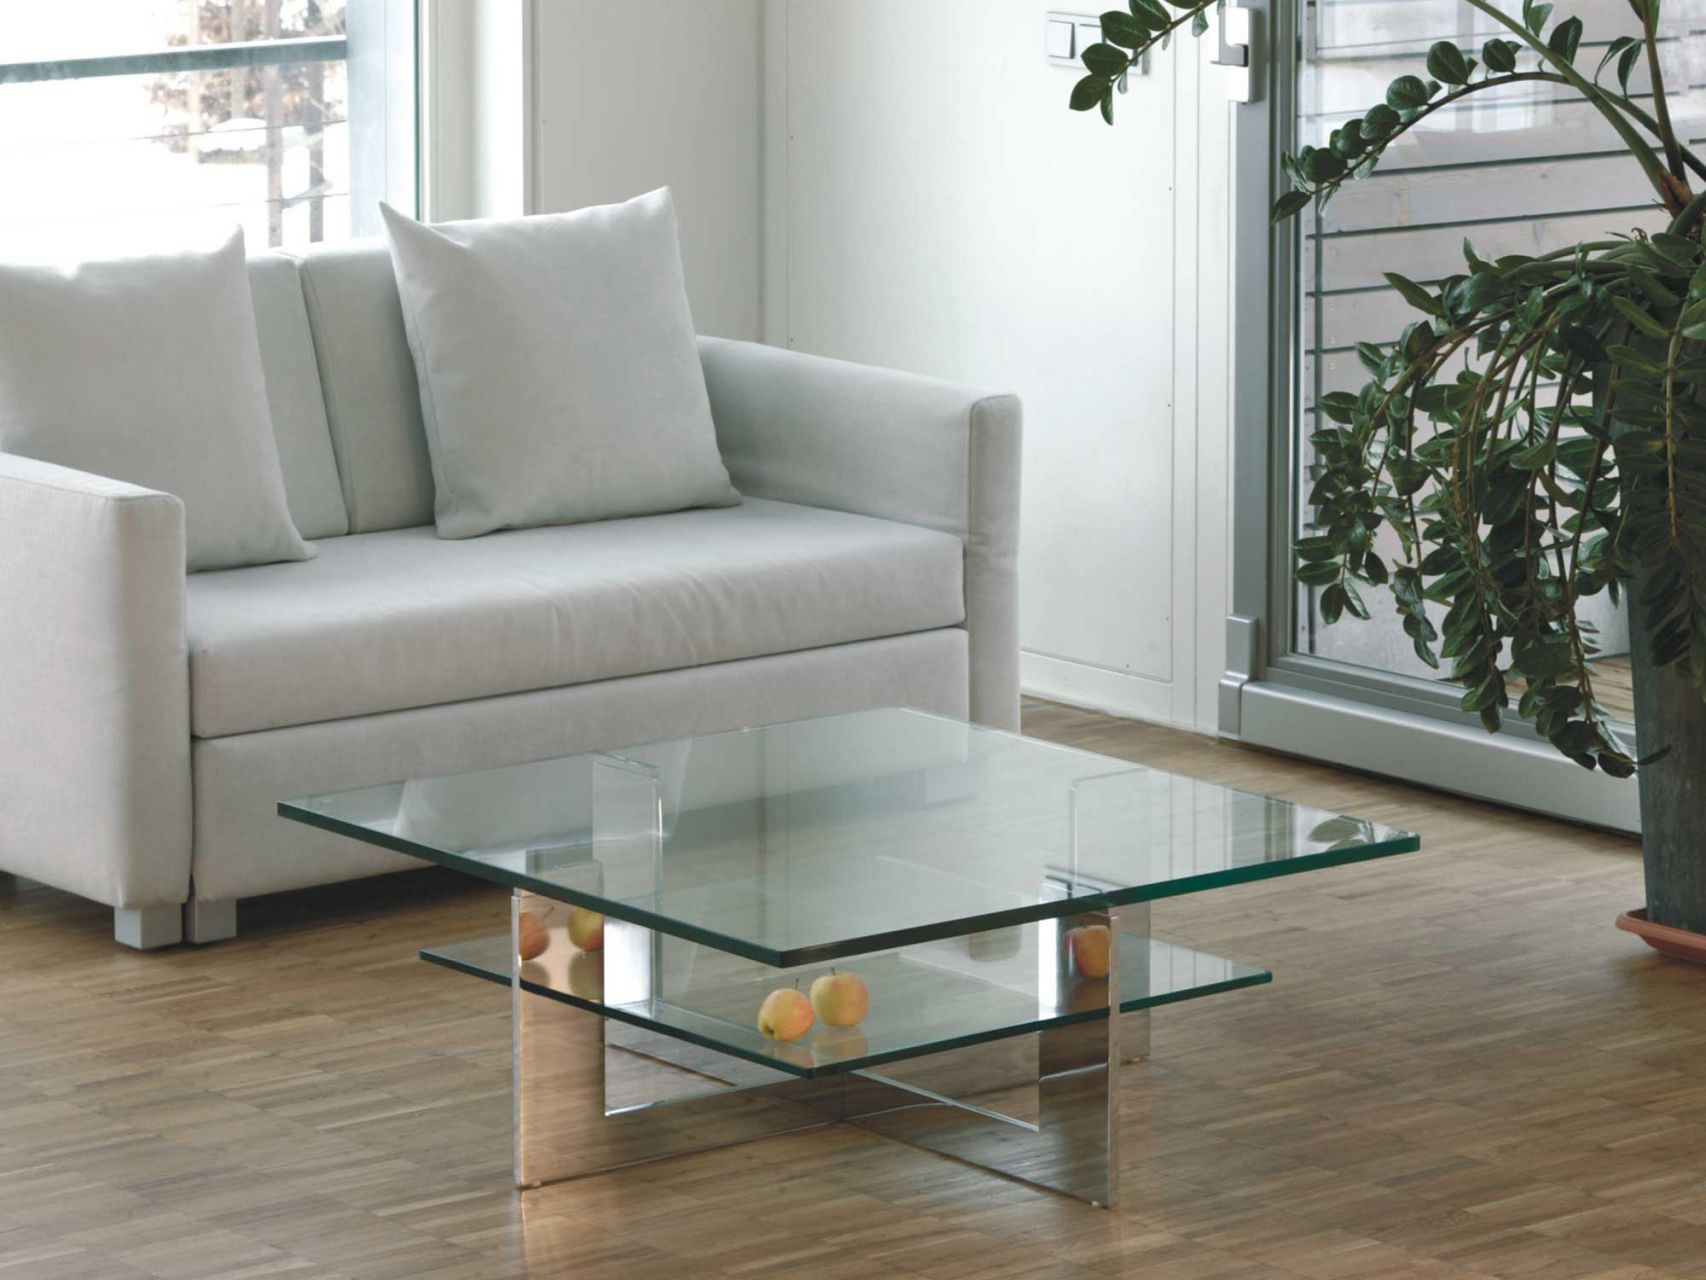 Symmetrical glass table by K. Steinkraus